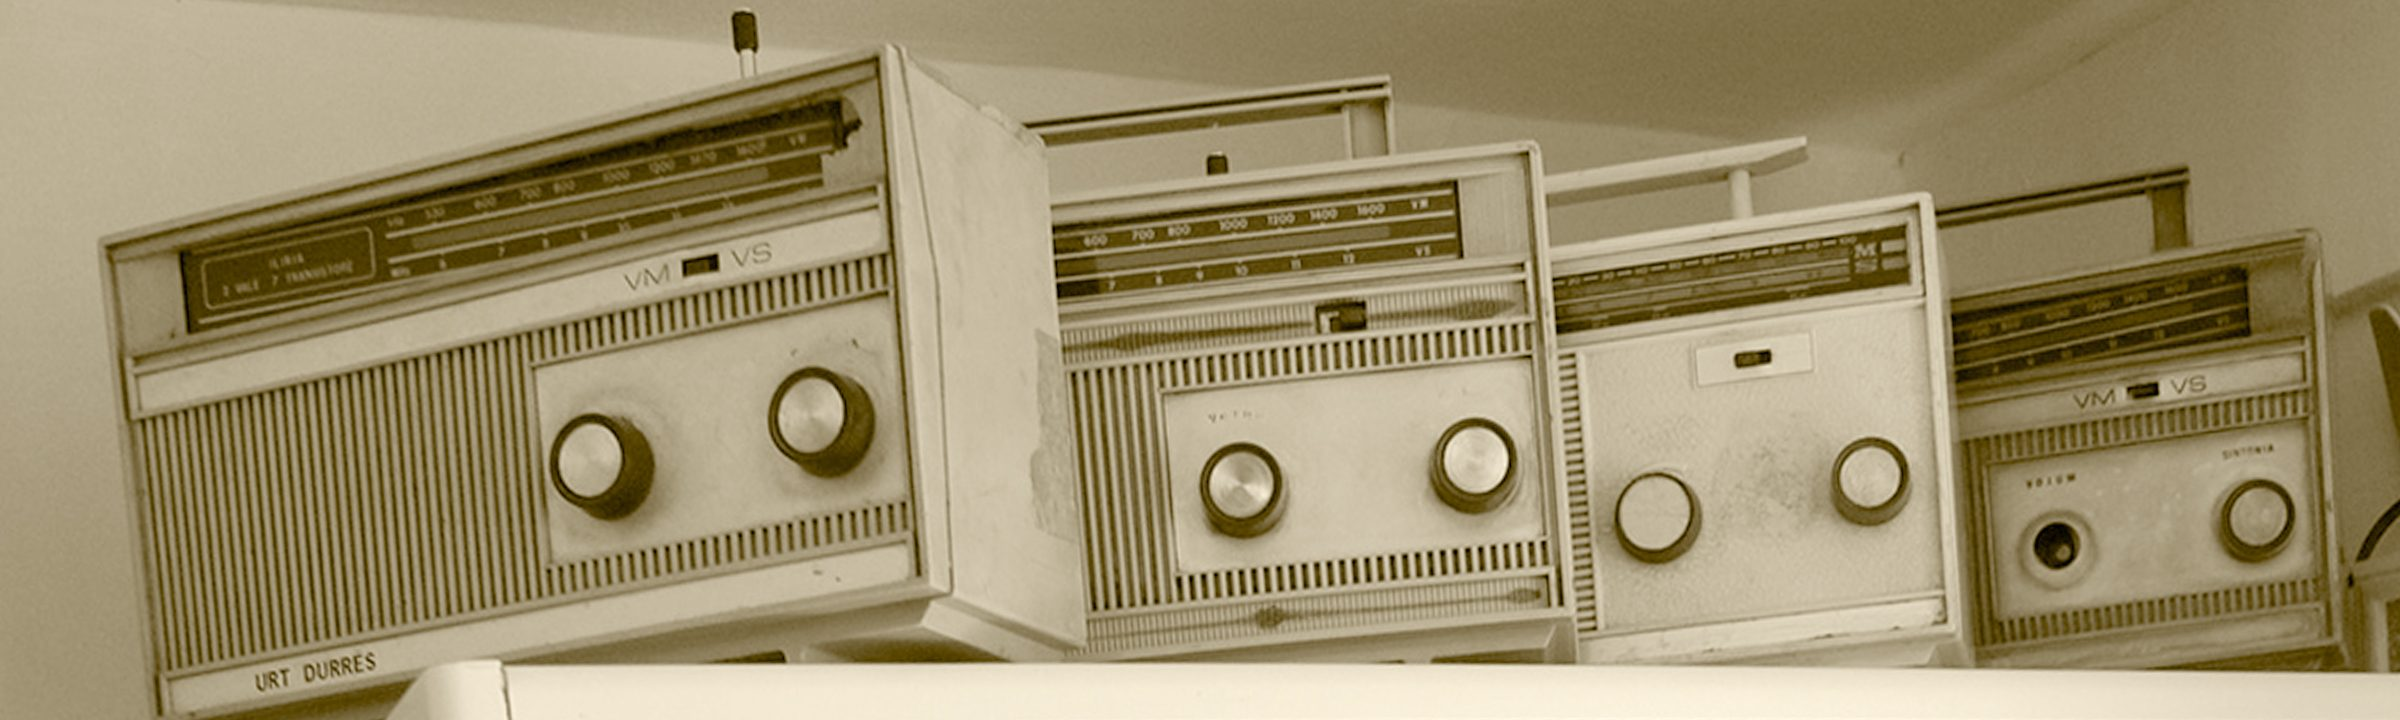 Radio Iliria - made in Durres, Albania